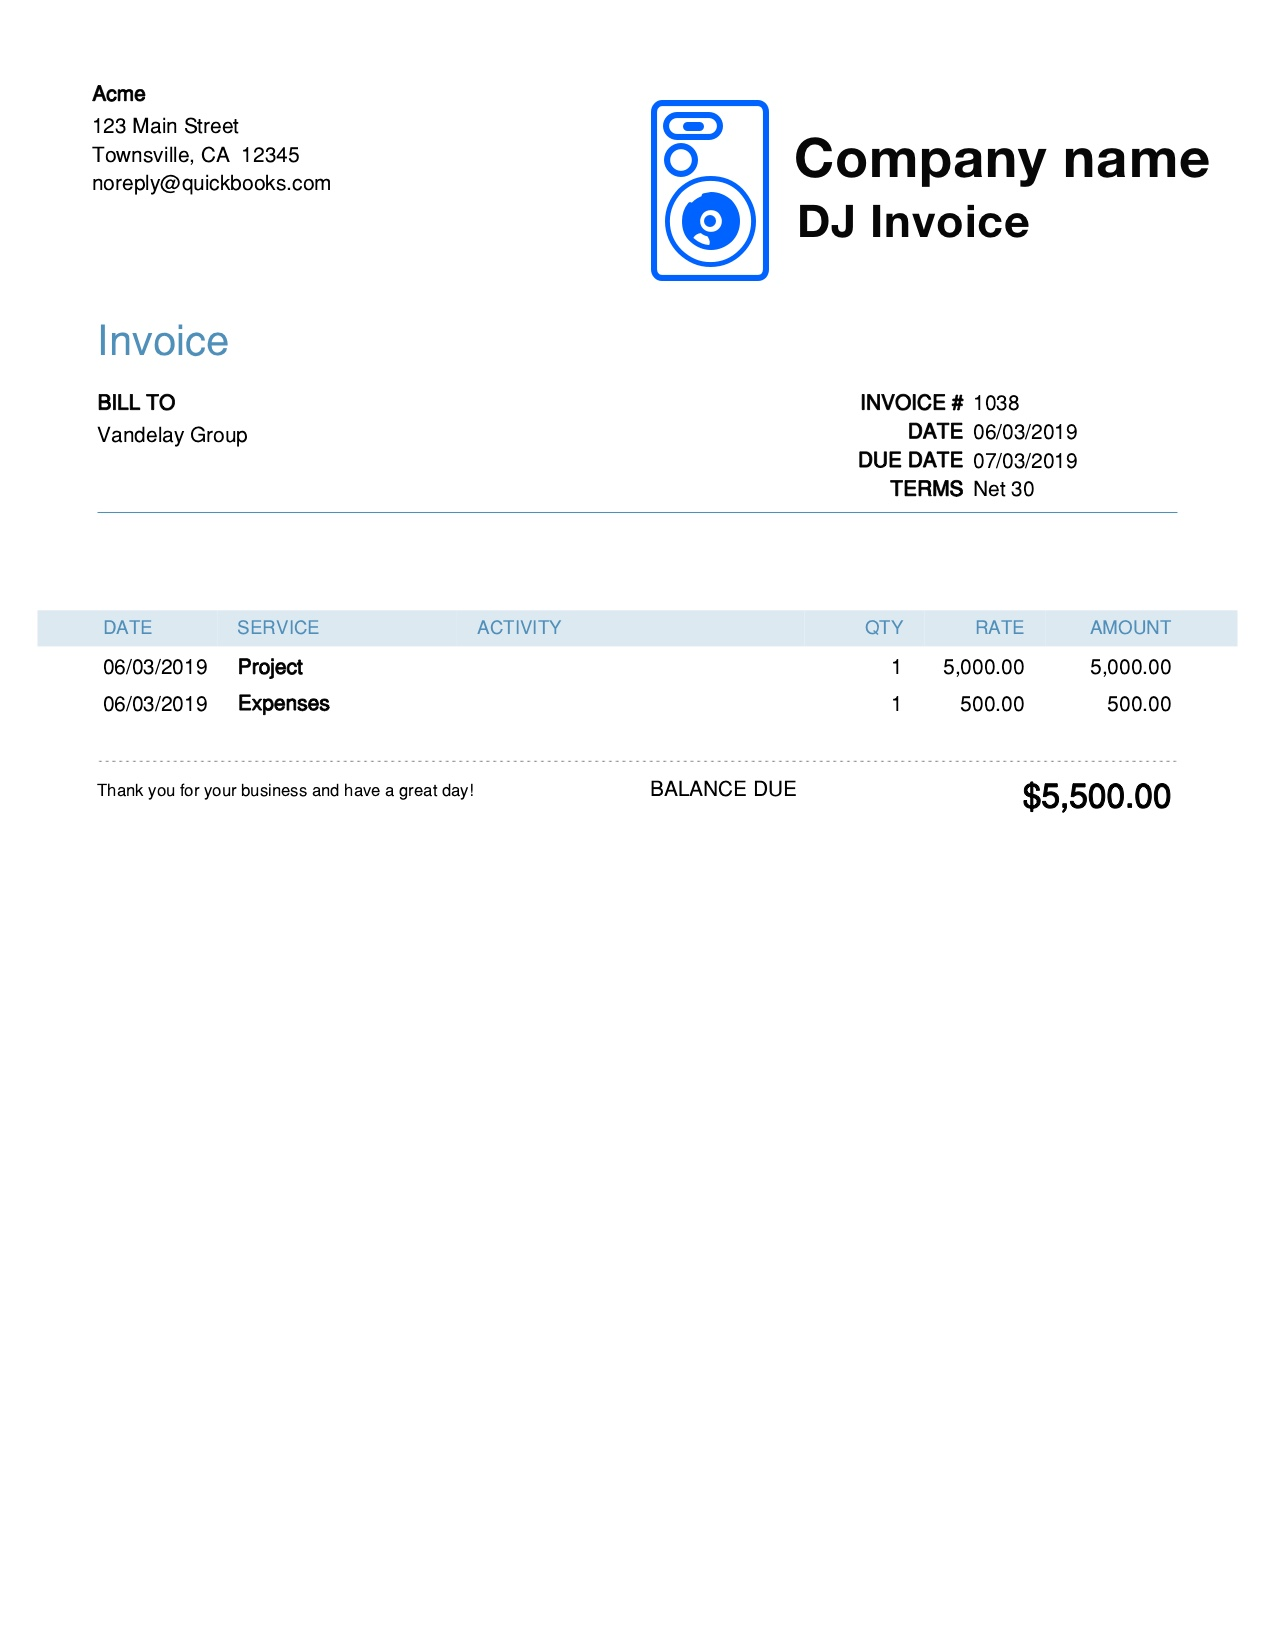 Free Dj Invoice Template Customize And Send In 90 Seconds